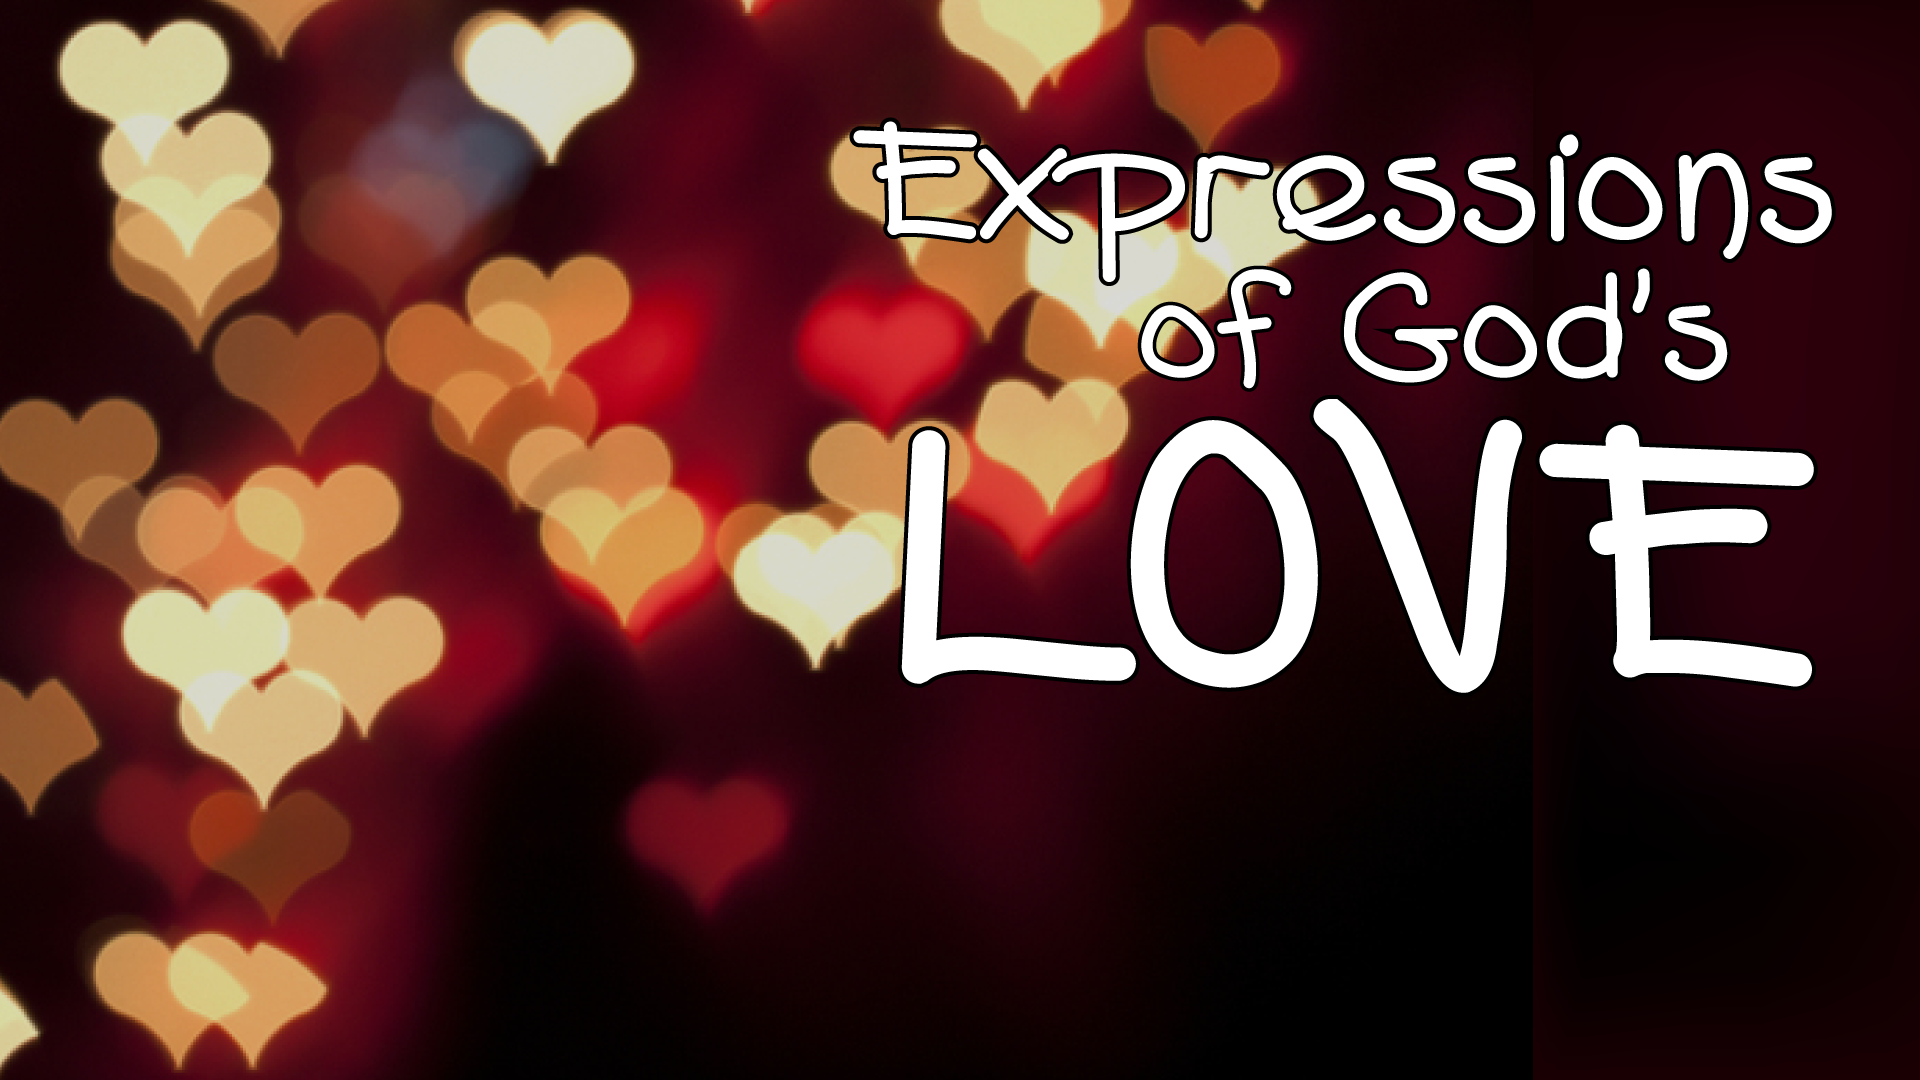 Expressions of God's Love